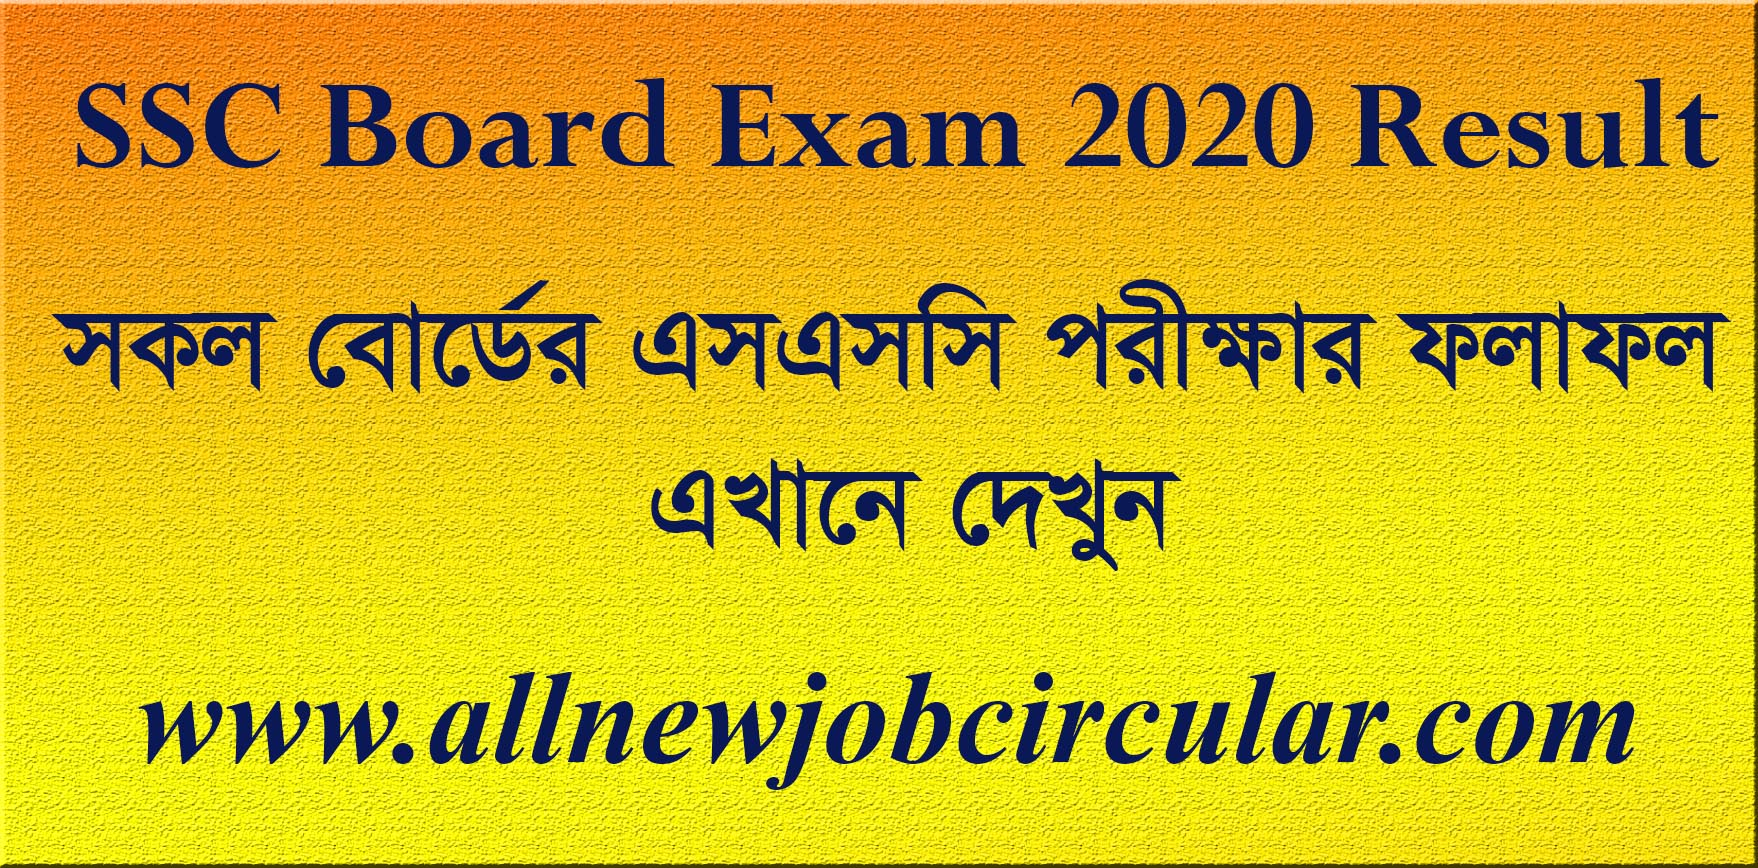 ssc board exam 2020 result